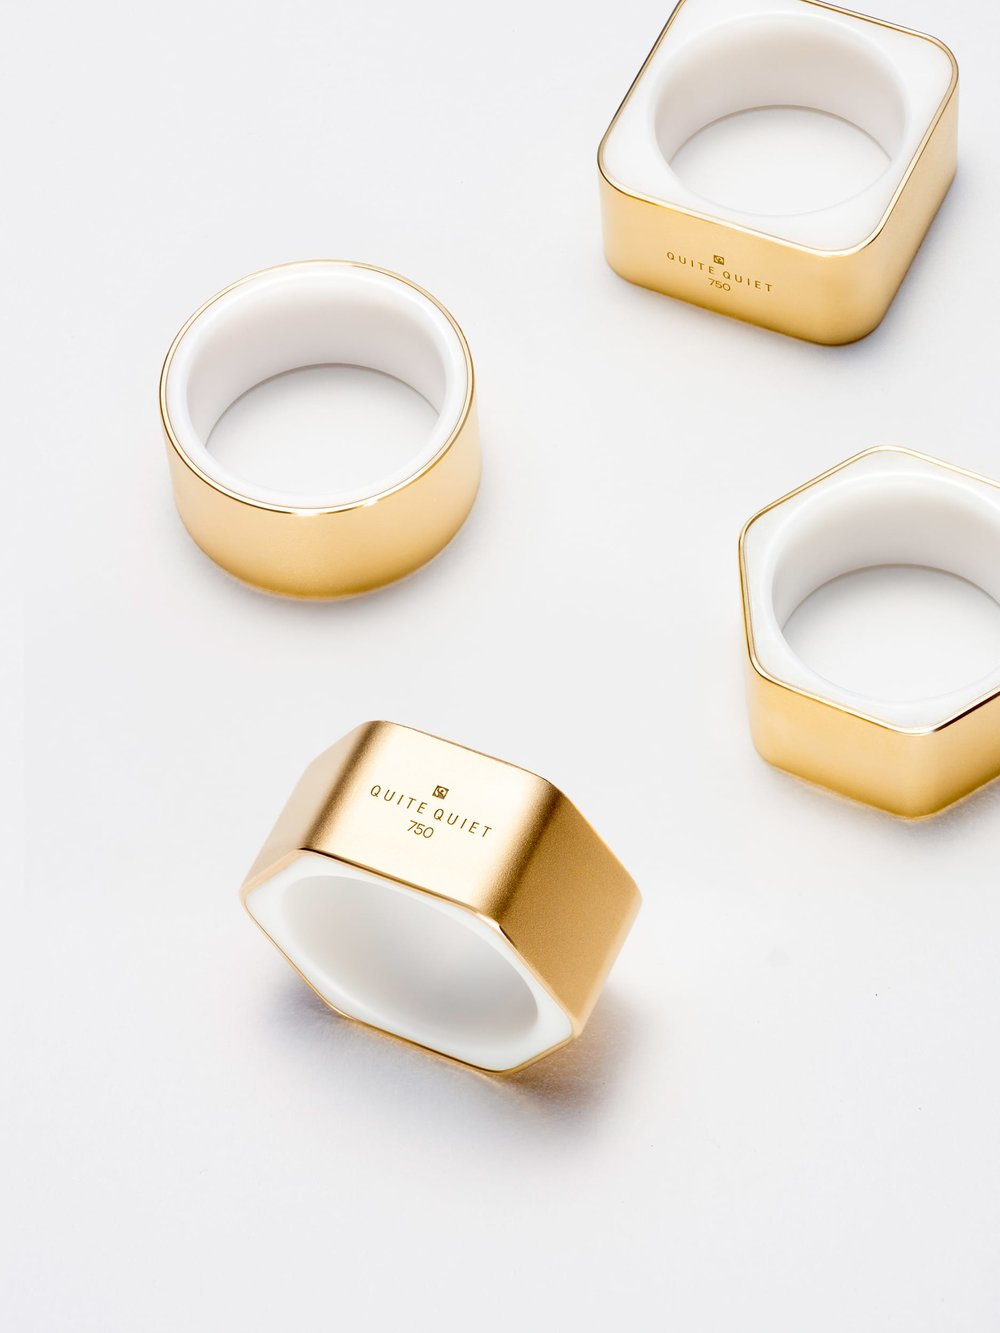 quite-quiet-berlin-frames-ceramics-fairtrade-gold.jpg